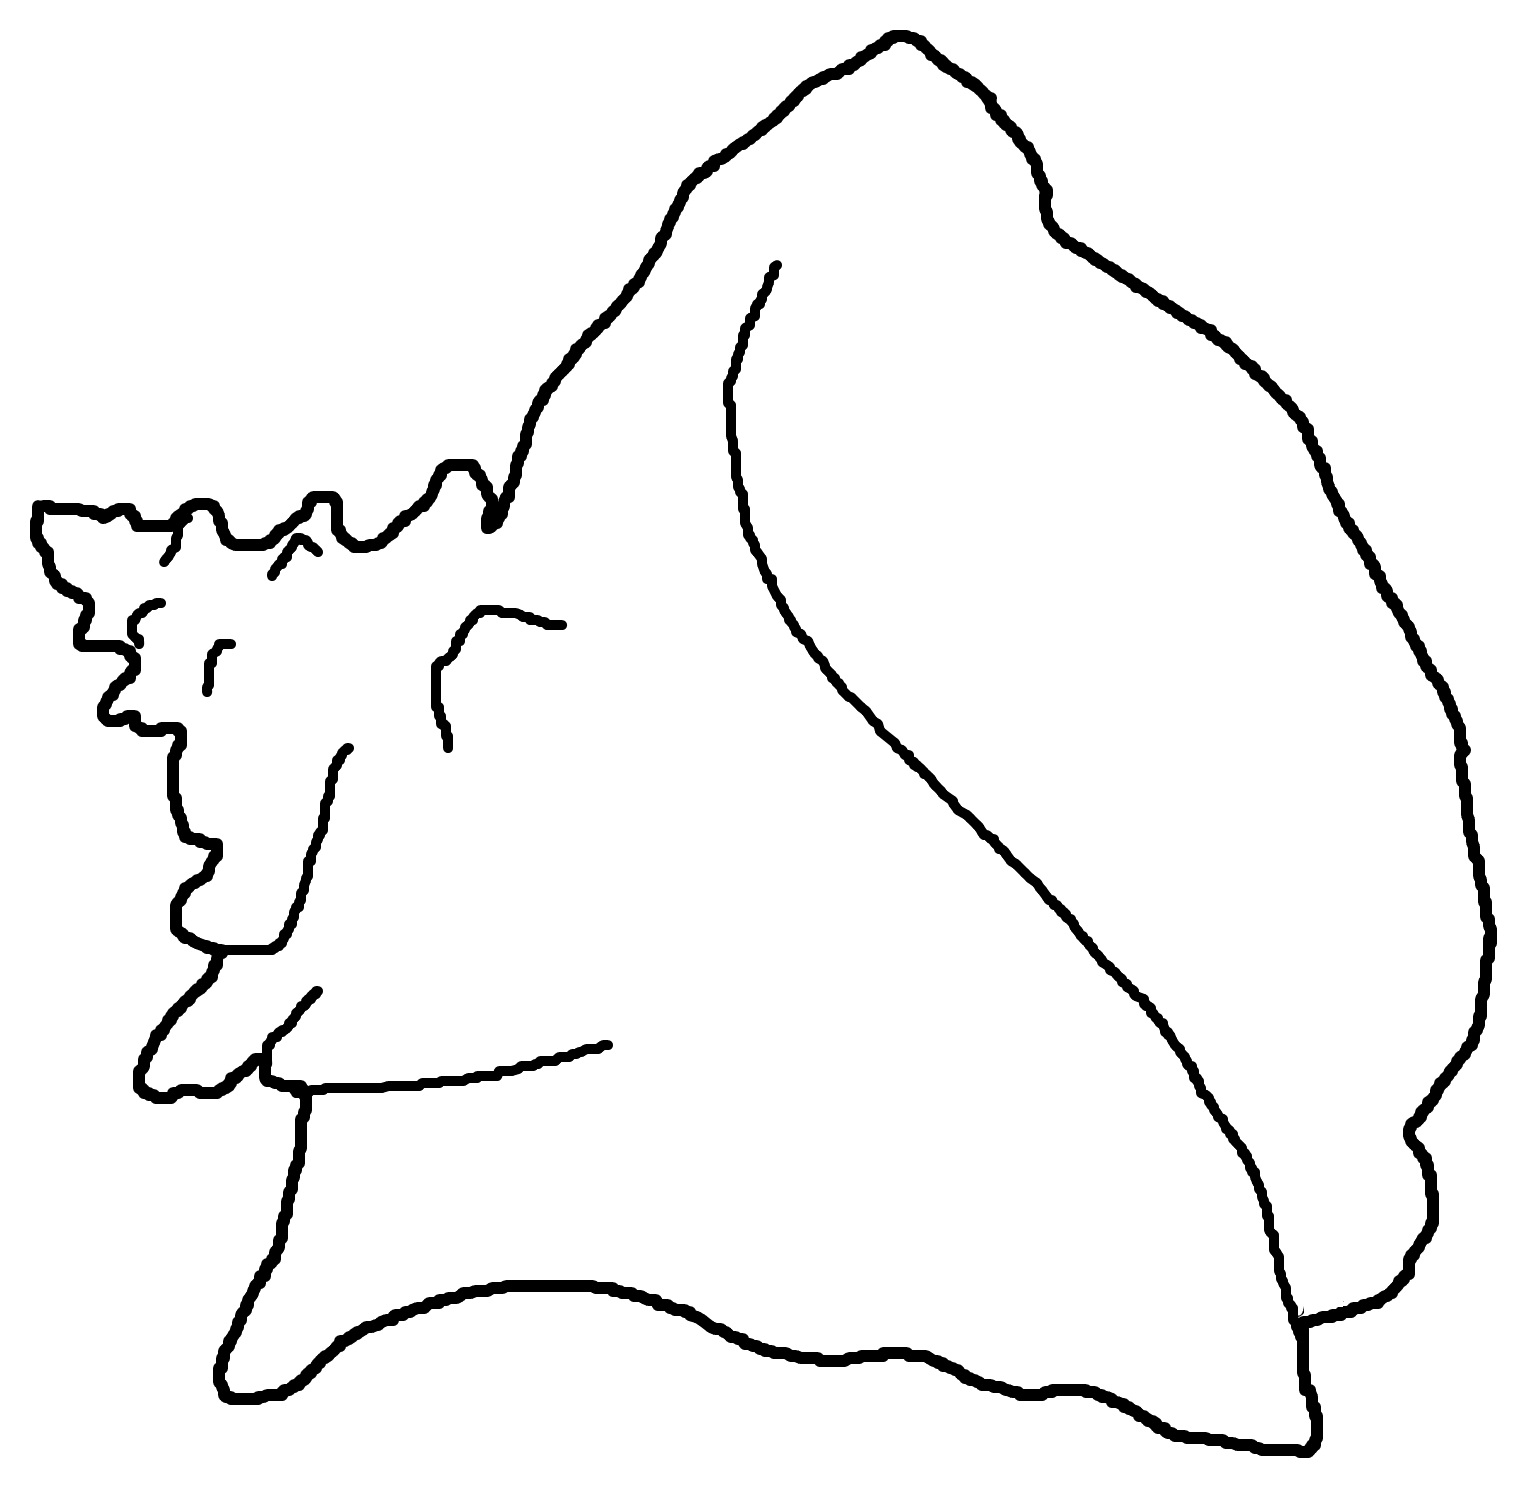 Printable coloring pages of queen esther - Seashell Coloring Page